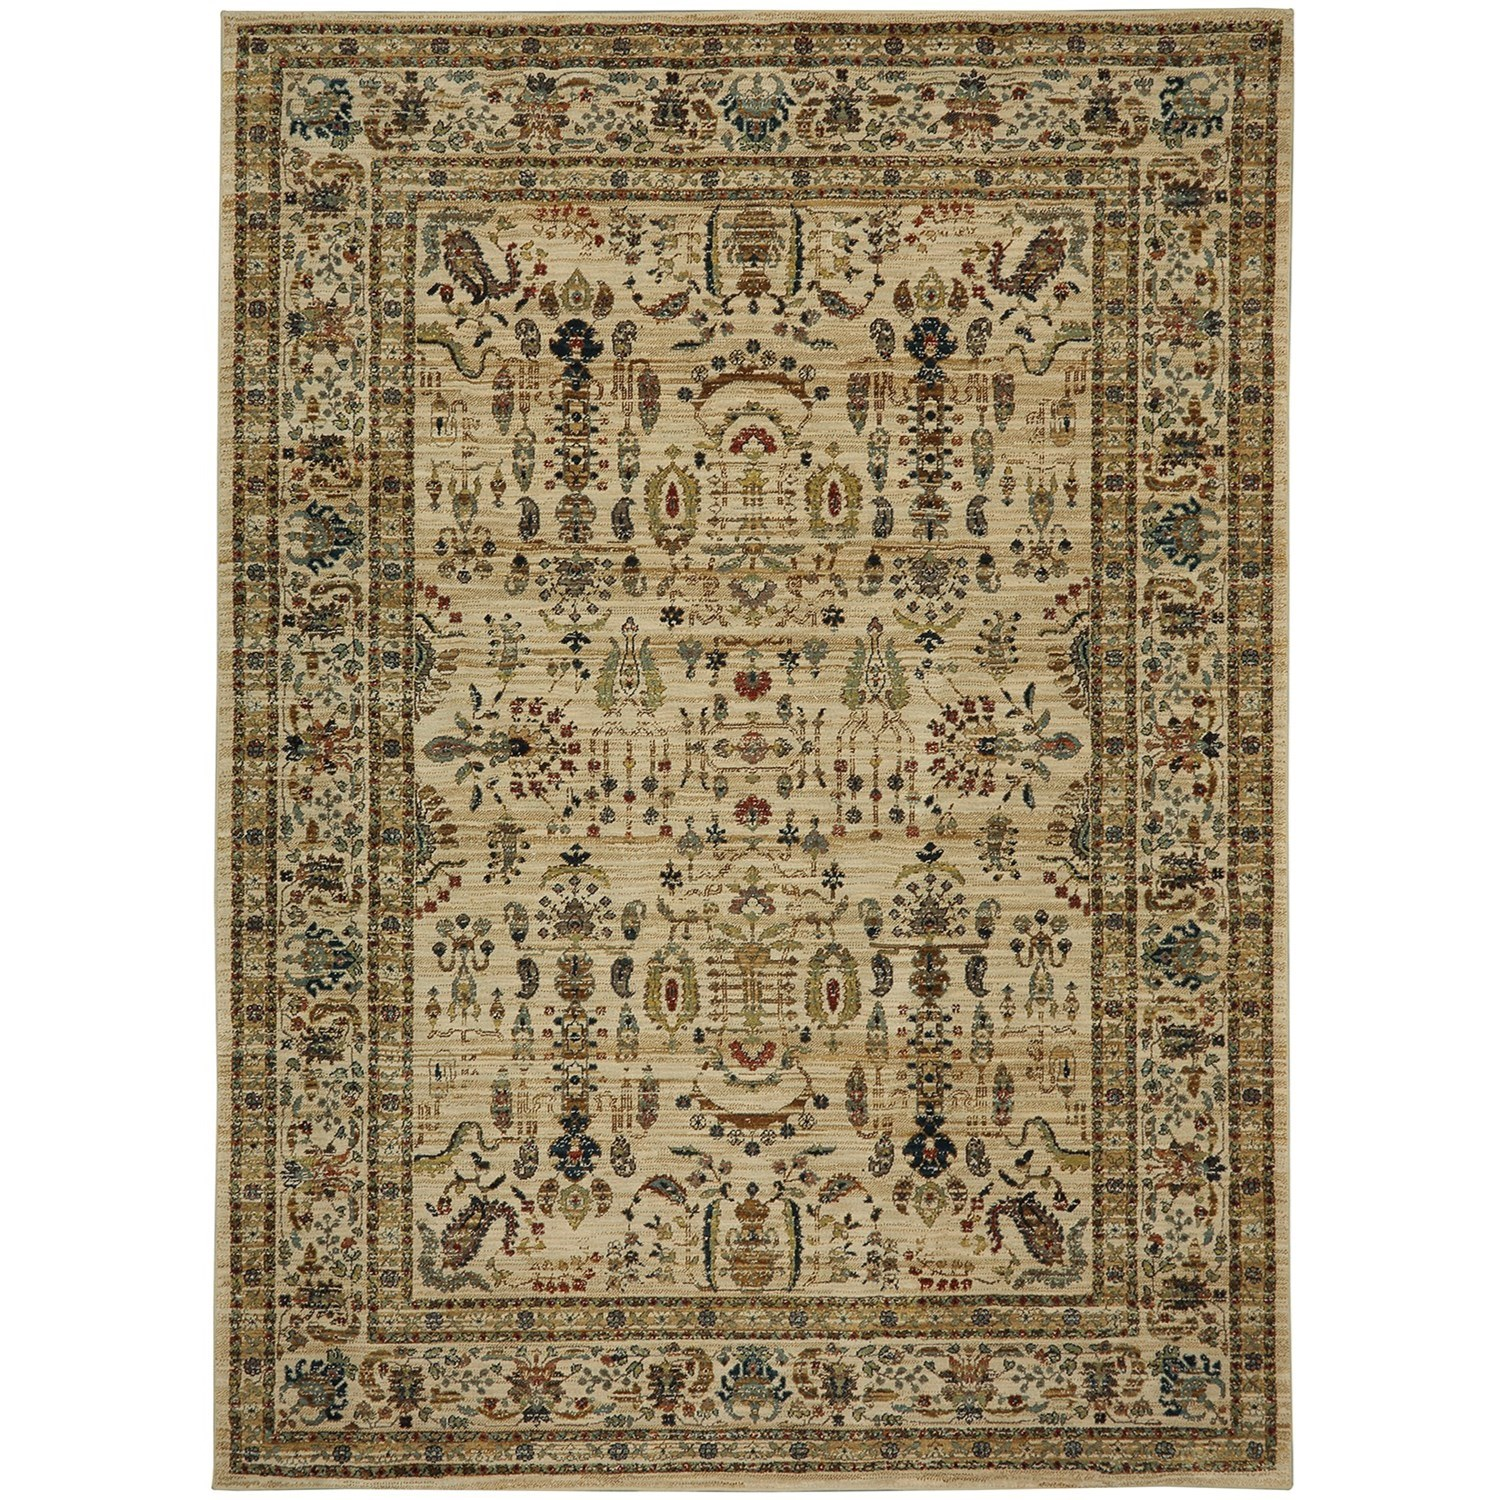 Spice Market 8'x11' Rectangle Ornamental Area Rug by Karastan Rugs at Alison Craig Home Furnishings